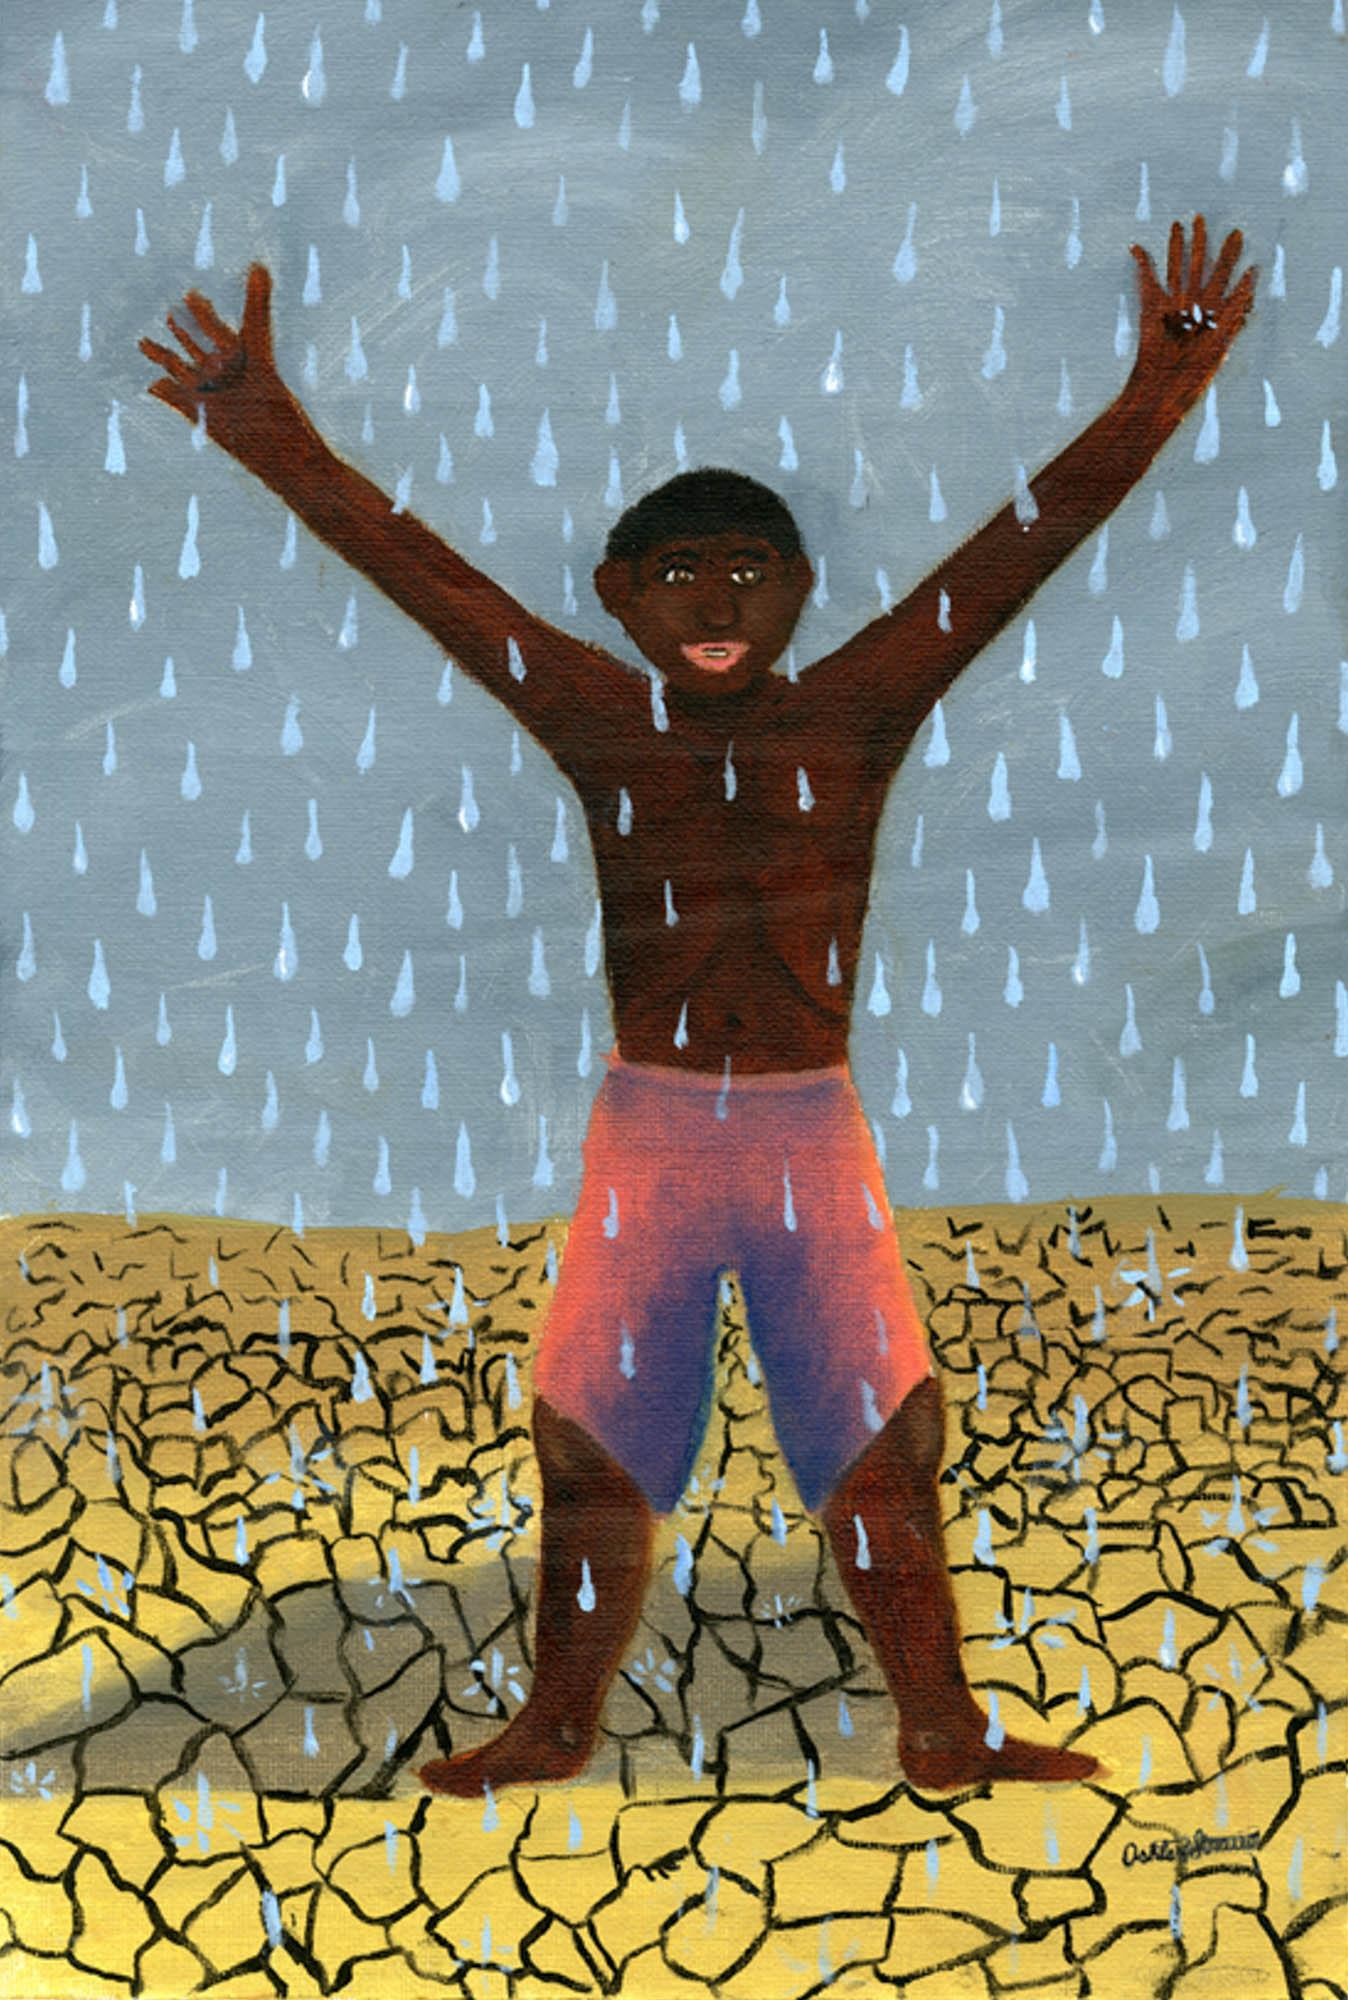 Rejoice in the Rain, Ashley Straub, age 11 Omaha, Nebraska (Submitted Independently), 2013 River of Words Finalist